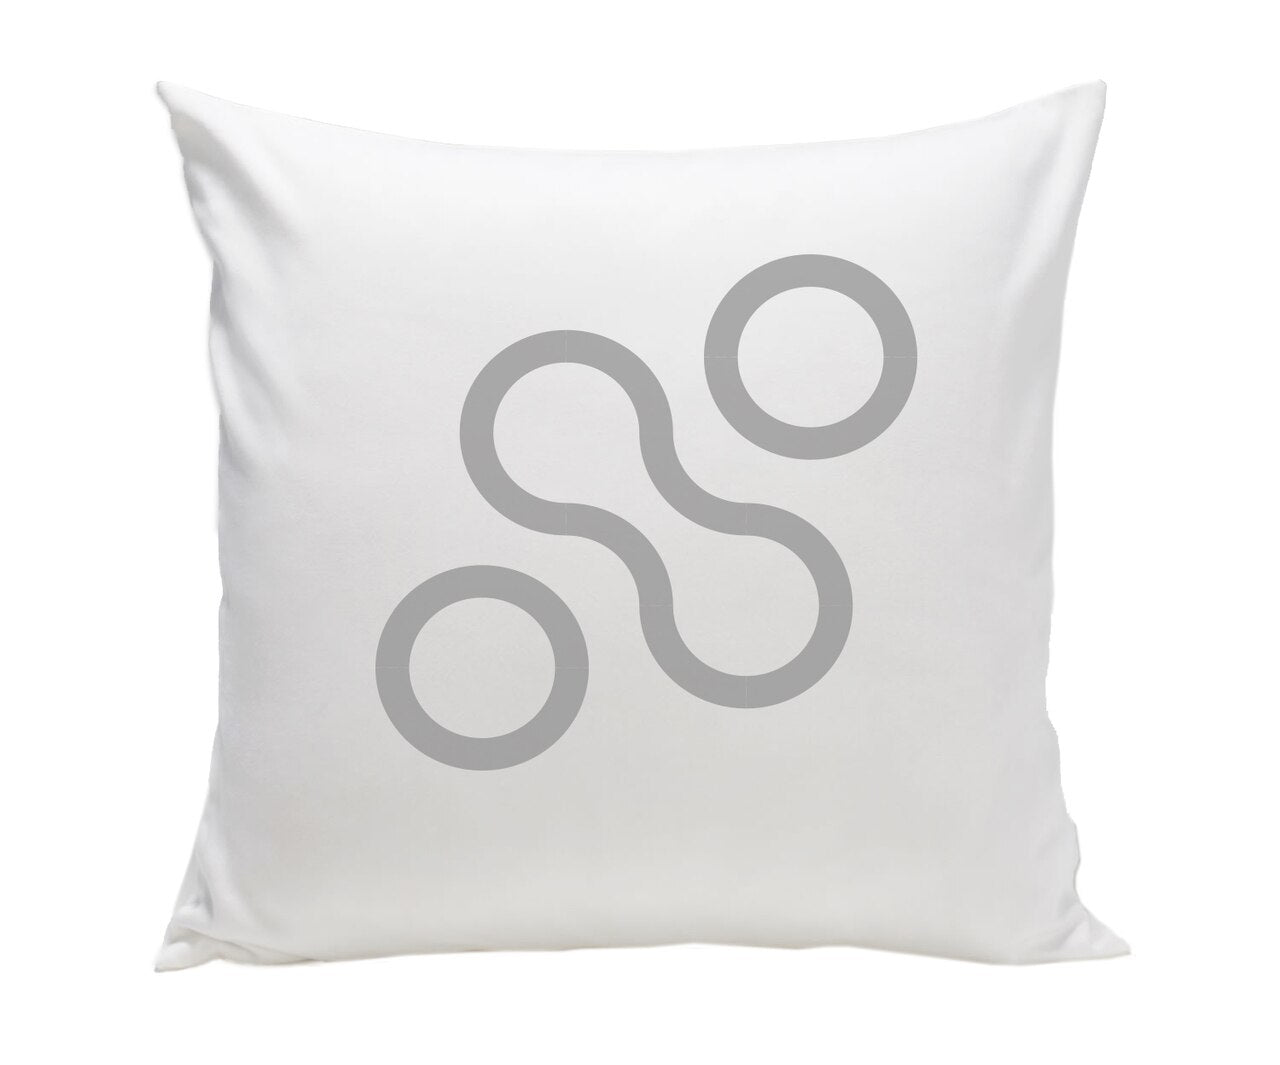 Spot On Square Join Pillow - Grey